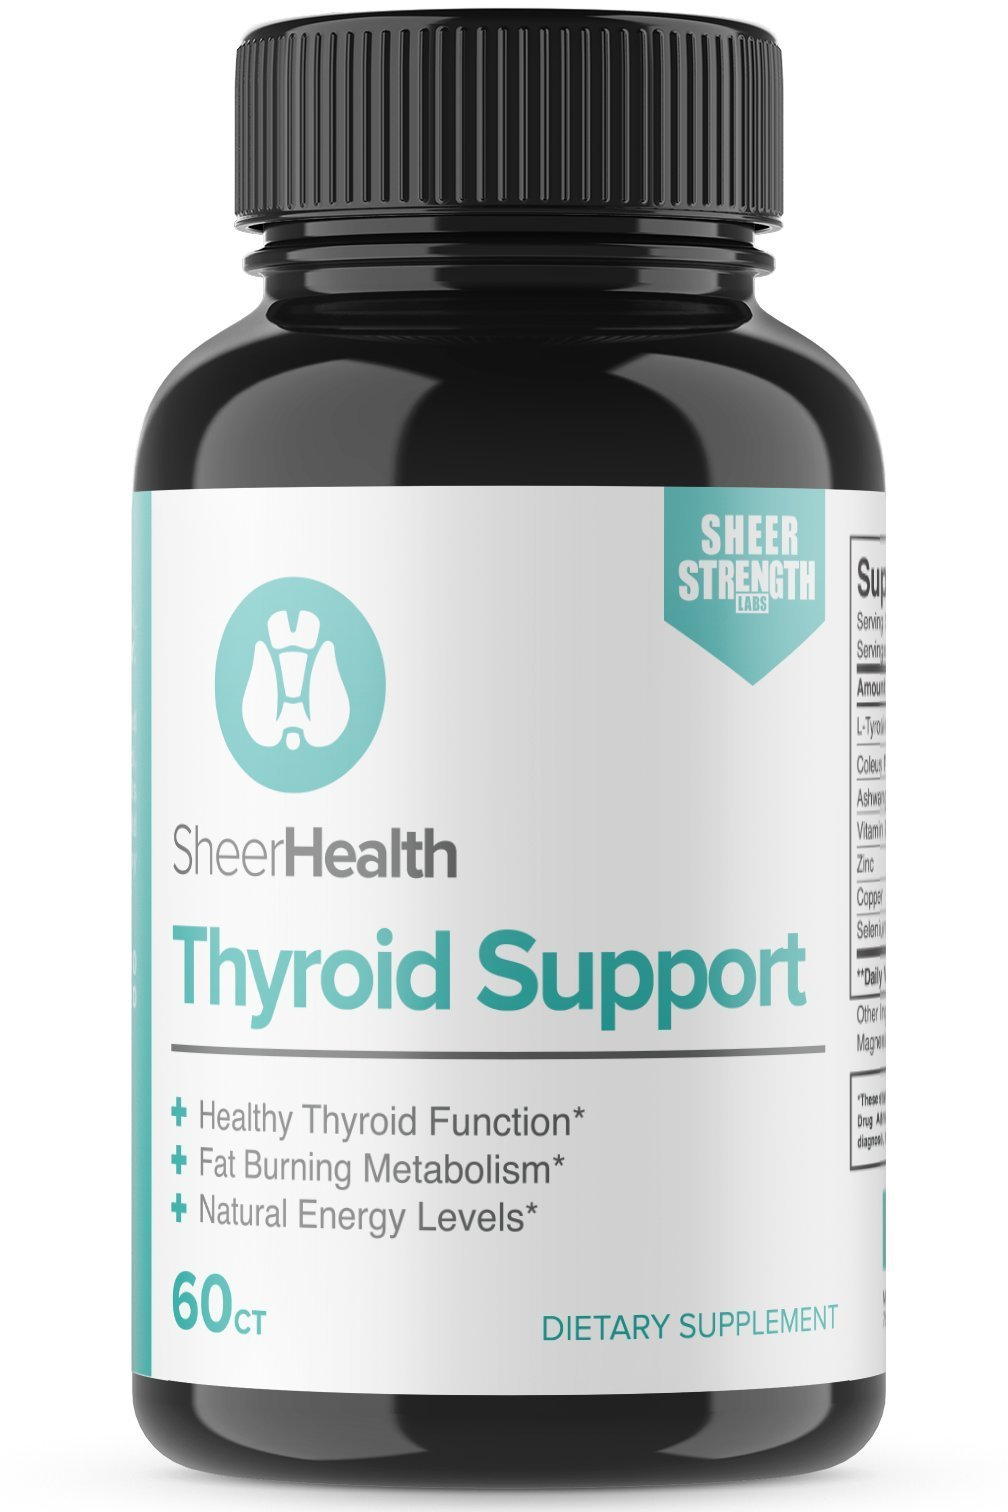 Sheer Natural Thyroid Support Supplement - Vitamin B12, Zinc, Copper, L-Tyrosine, Selenium, Ashwagandha, and More for Boosting Energy and Losing Weight, 30 Day Supply